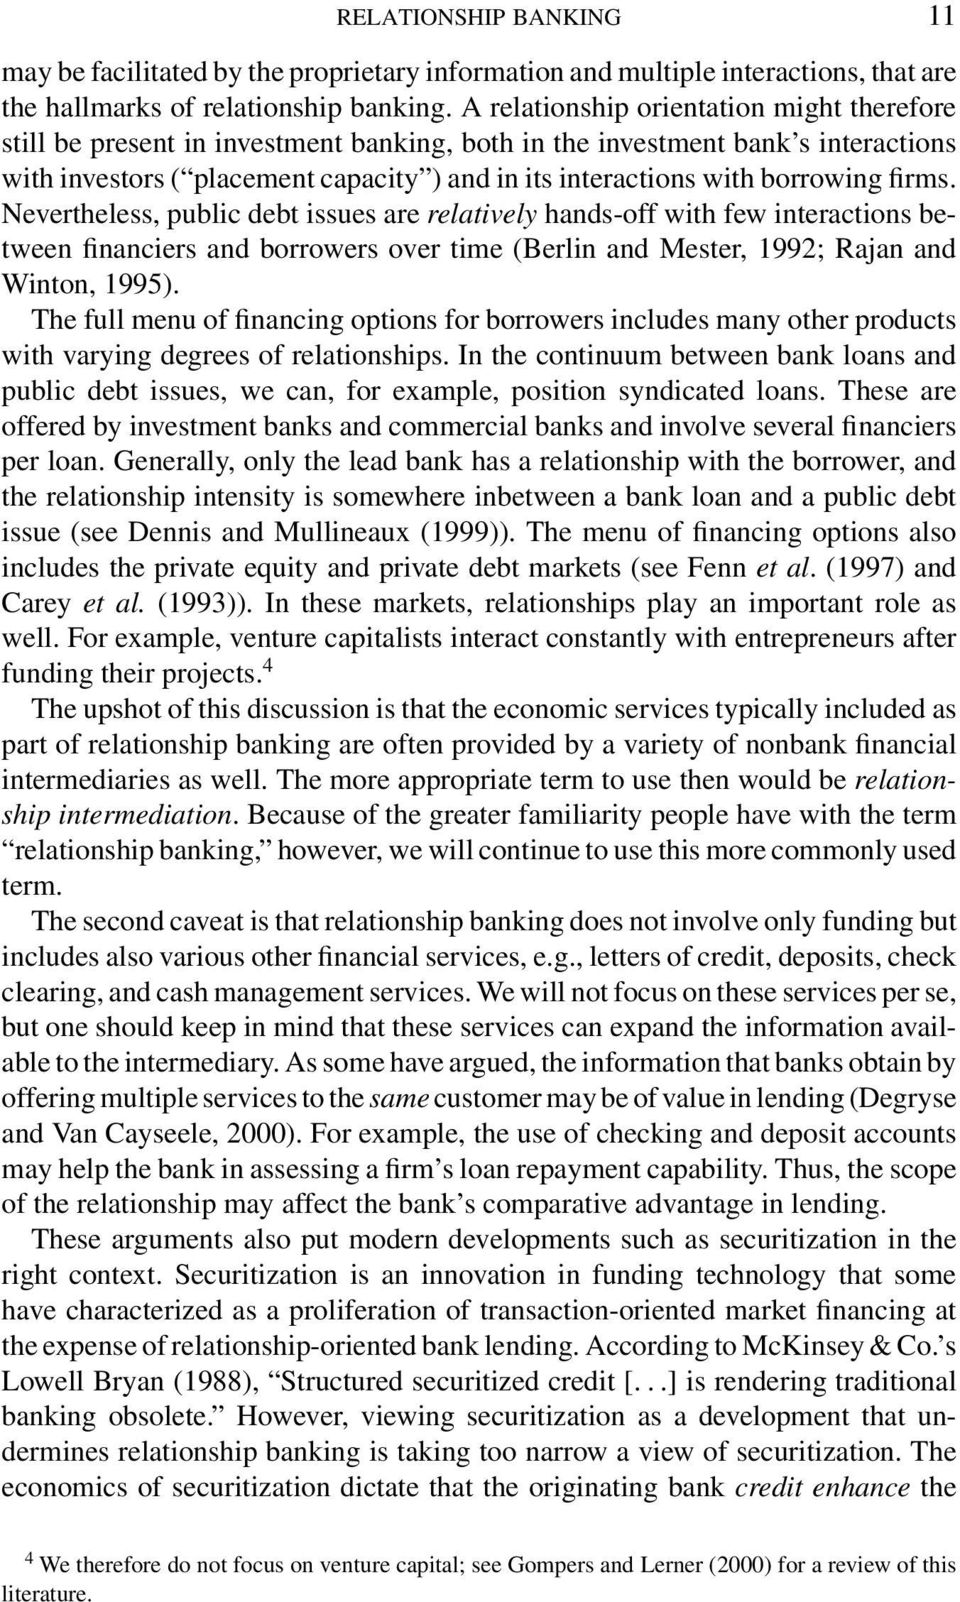 borrowing firms. Nevertheless, public debt issues are relatively hands-off with few interactions between financiers and borrowers over time (Berlin and Mester, 1992; Rajan and Winton, 1995).